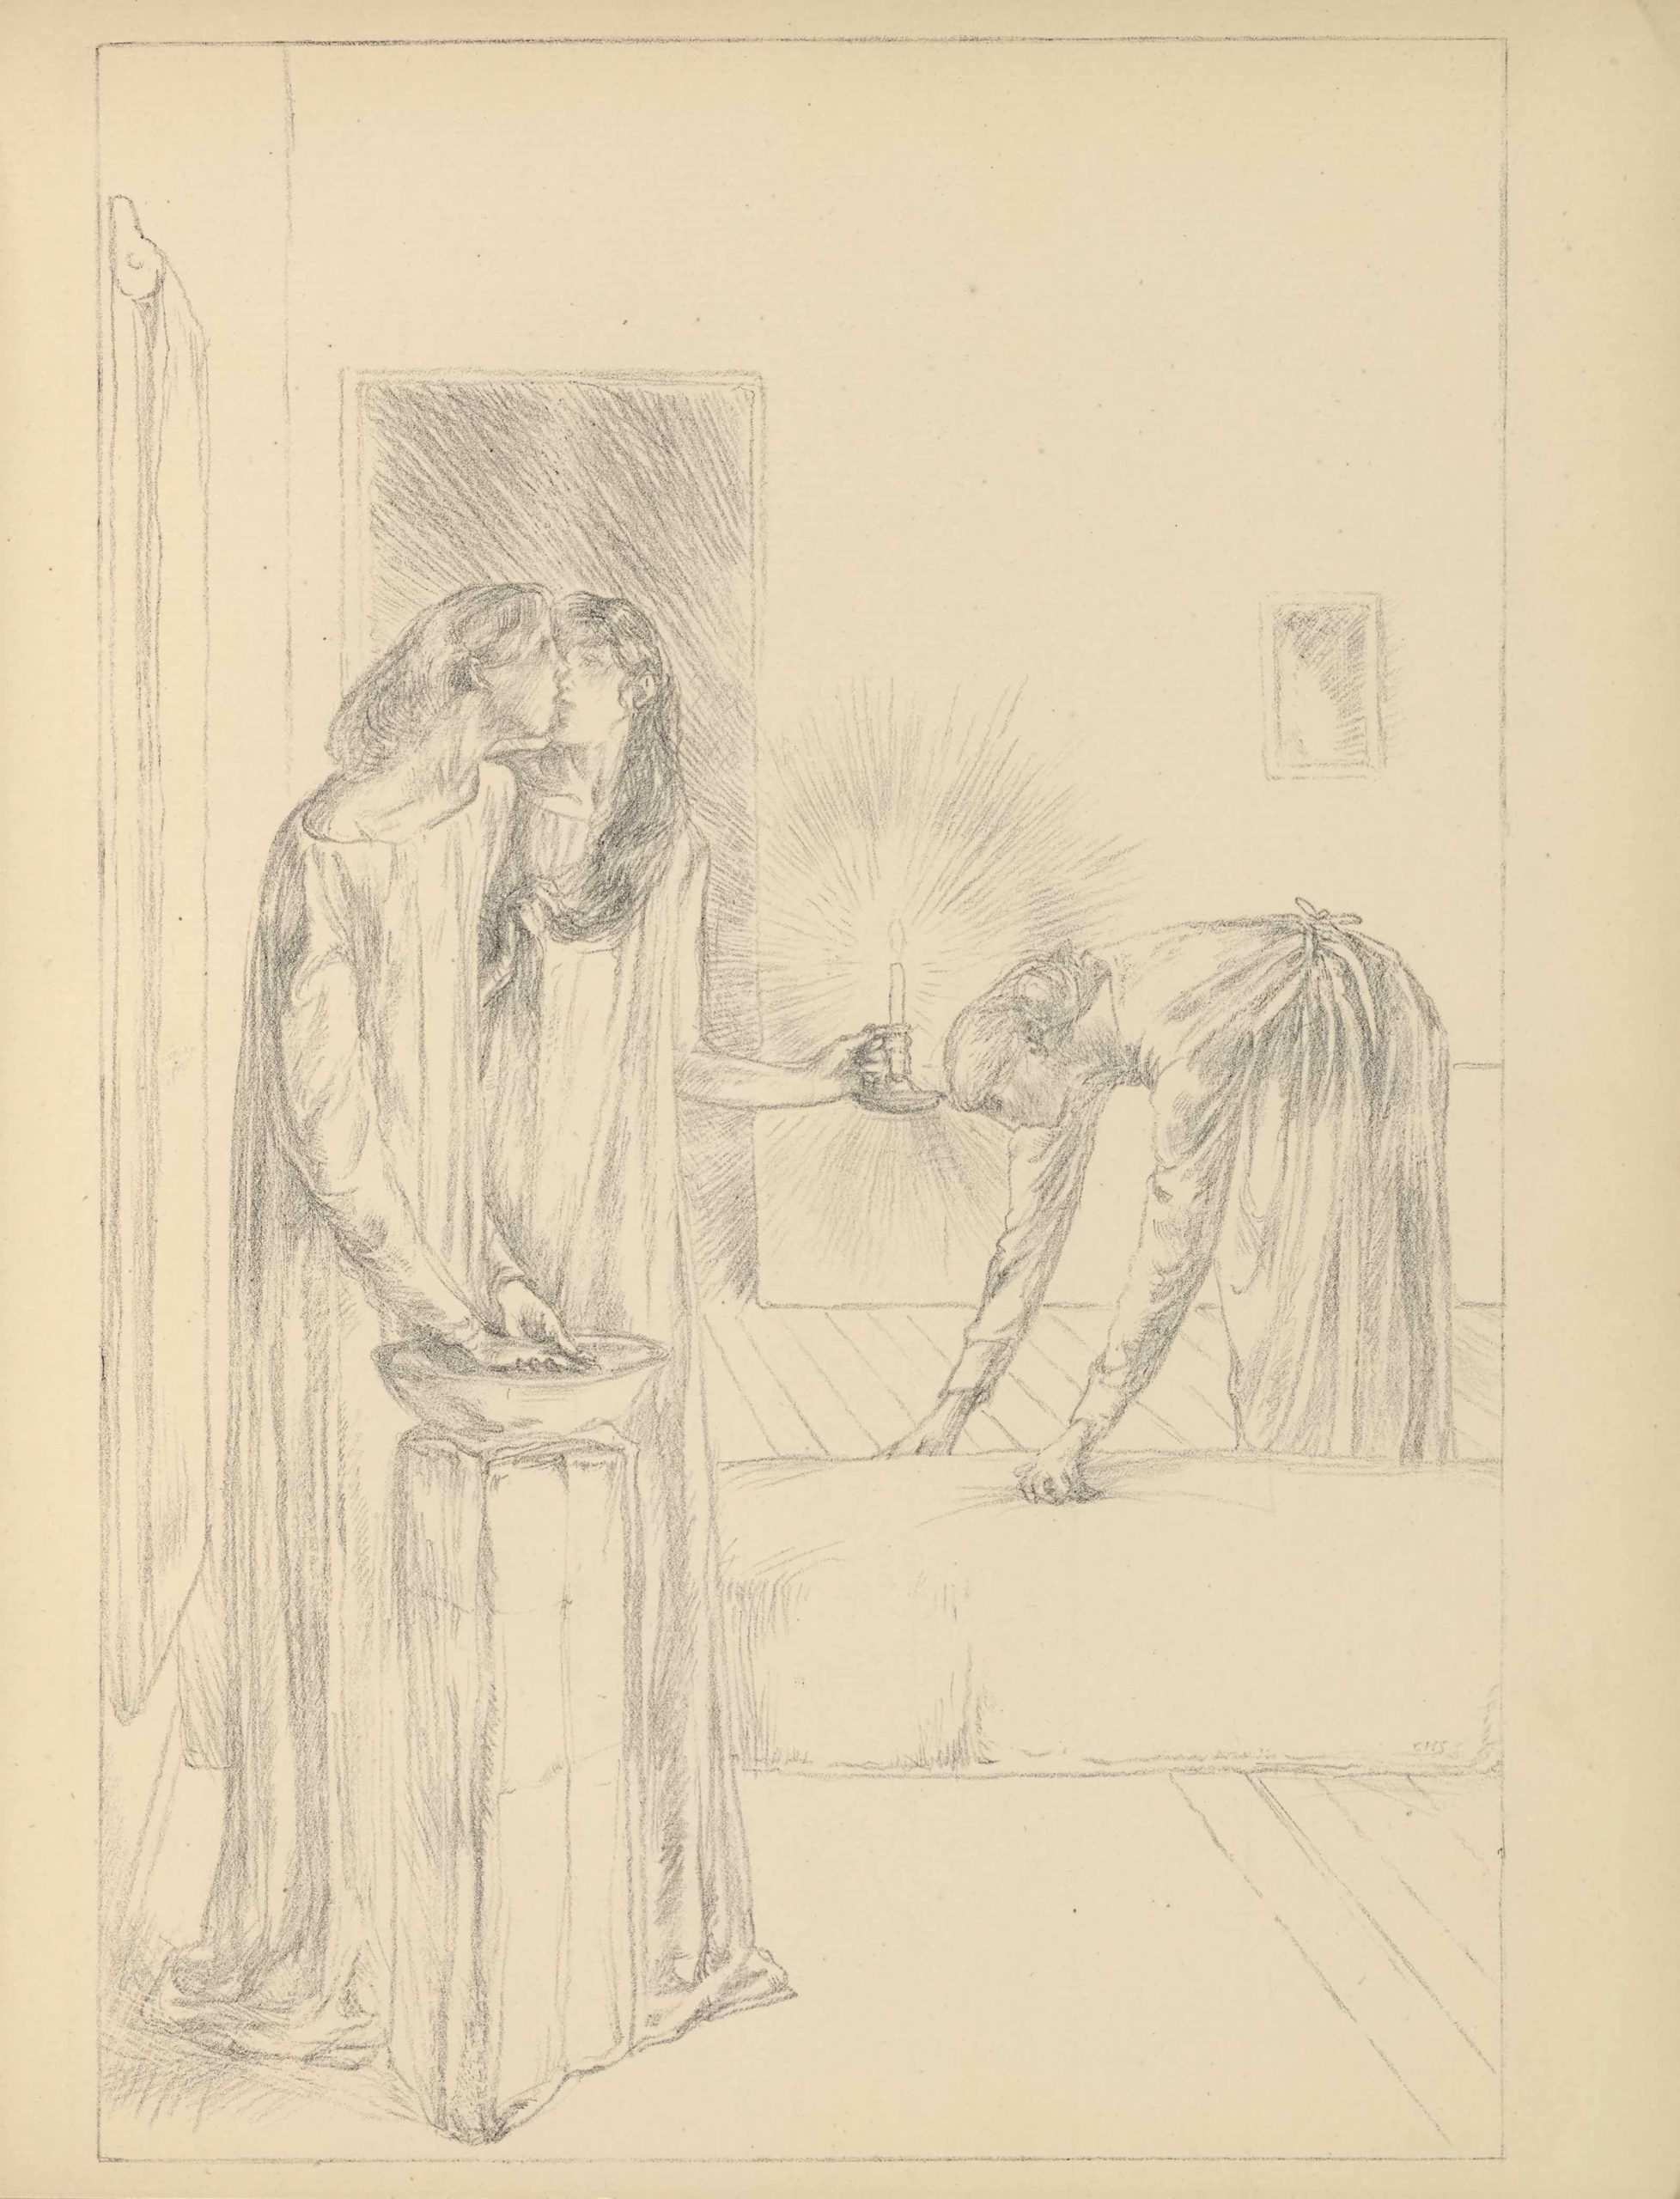 The lithographic image is set into a thinly-lined rectangle on the centre of the page.                          The image, represented in soft grey tones, shows a view into a bedroom in which three women                          are preparing for night. In the left foreground stand two women in long nightdresses in front                          of an open doorway beside a curtained window on the leftmost wall of the room. They stand in front                          of a wash basin set upon a draped stone pillar. The leftmost woman is positioned in three-quarter                          posture, washing her hands in the basin as she turns to kiss the woman beside her. Her hair is bound                          on the back of her neck and her night dress slips off of her right shoulder. The women face each                          other as they kiss. The woman beside her has long hair hanging down her front which she clasps in                          her right hand. Her left hand holds a flaming candlestick out to her left. The candlestick is                          centred in the image and its light radiates outwards. Nearby, in the middle ground and centre right,                          a woman wearing an apron with her hair in a snood bends over at 90 degrees to make up a bed or mattress                          on the ground. The bed is between the pair of women in the foreground and the woman in the                          middle ground. The floor is composed of diagonal planks of wood. On the wall above the woman making the                          bed is a framed mirror that catches and radiates the candle's light.